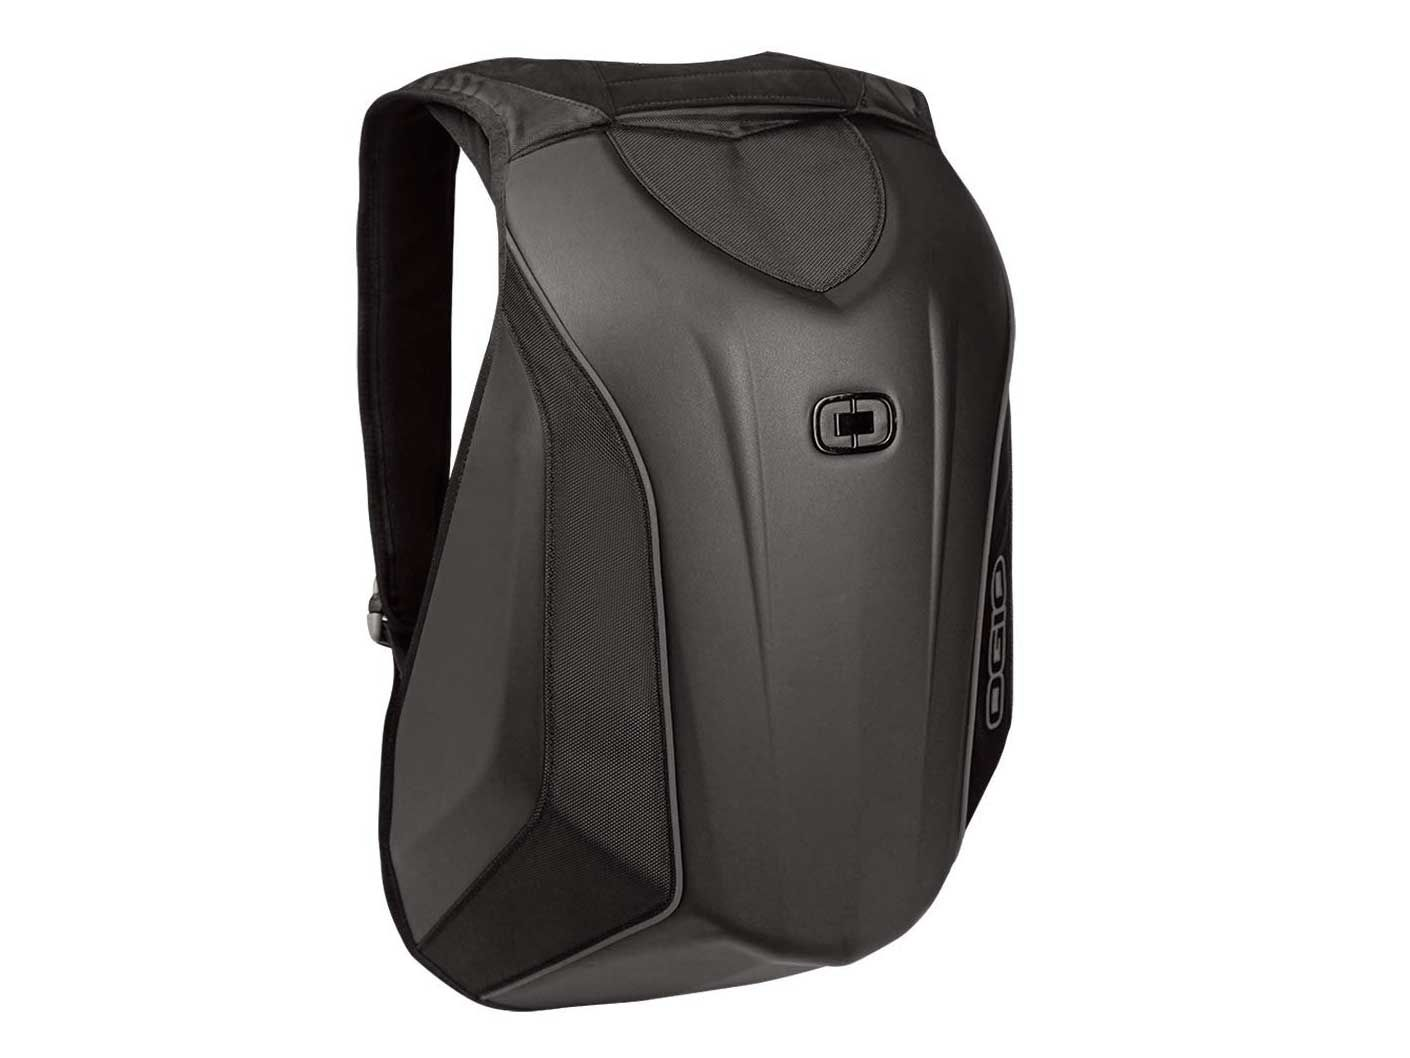 The Ogio No Drag Mach 3 delivers a form-fitting aerodynamic fit, with commuter-friendly features that include dedicated shoe storage and compartments for electronics.